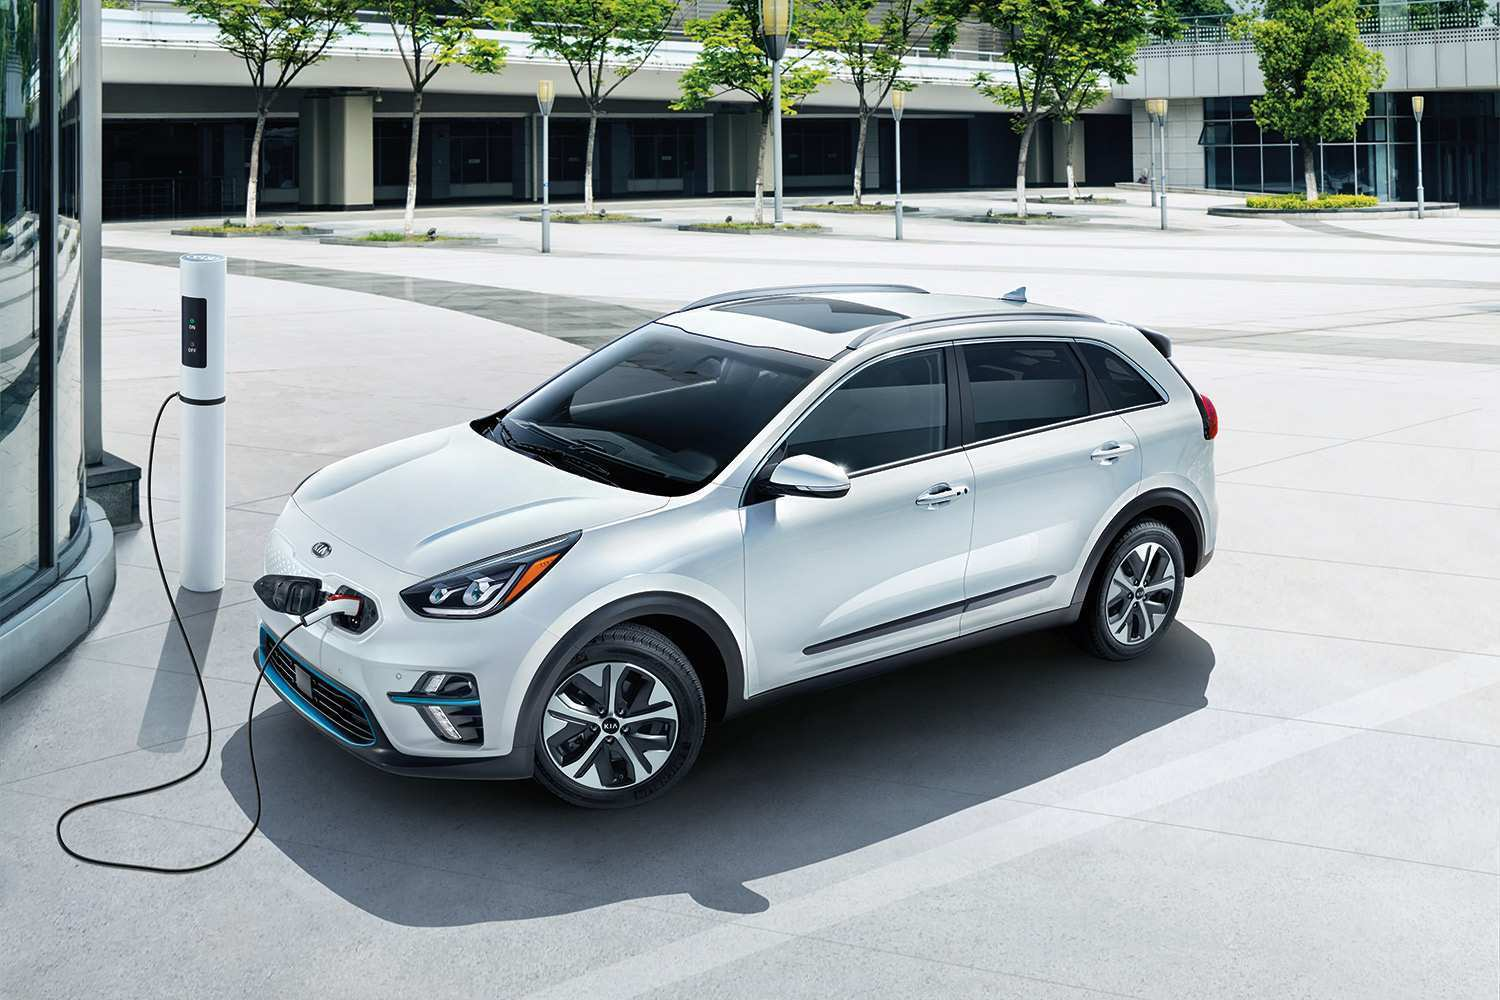 73 Great 2019 Kia Niro Ev New Review by 2019 Kia Niro Ev